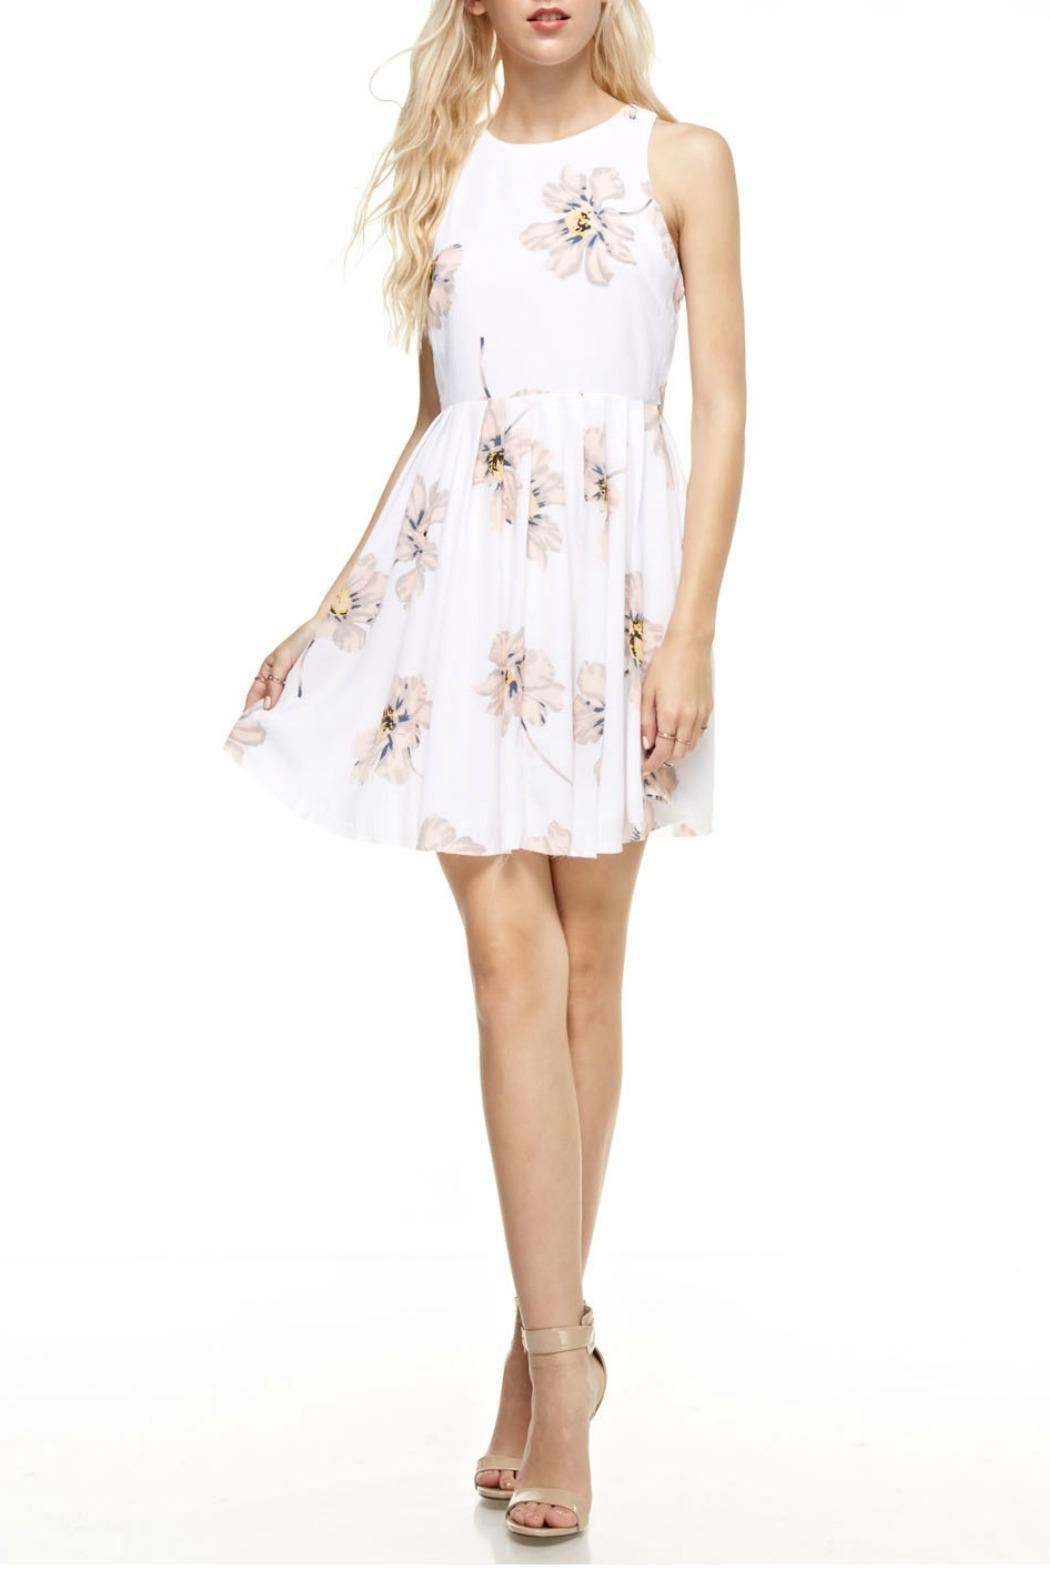 Aakaa peach blossom dress shoptiques boutique products pinterest